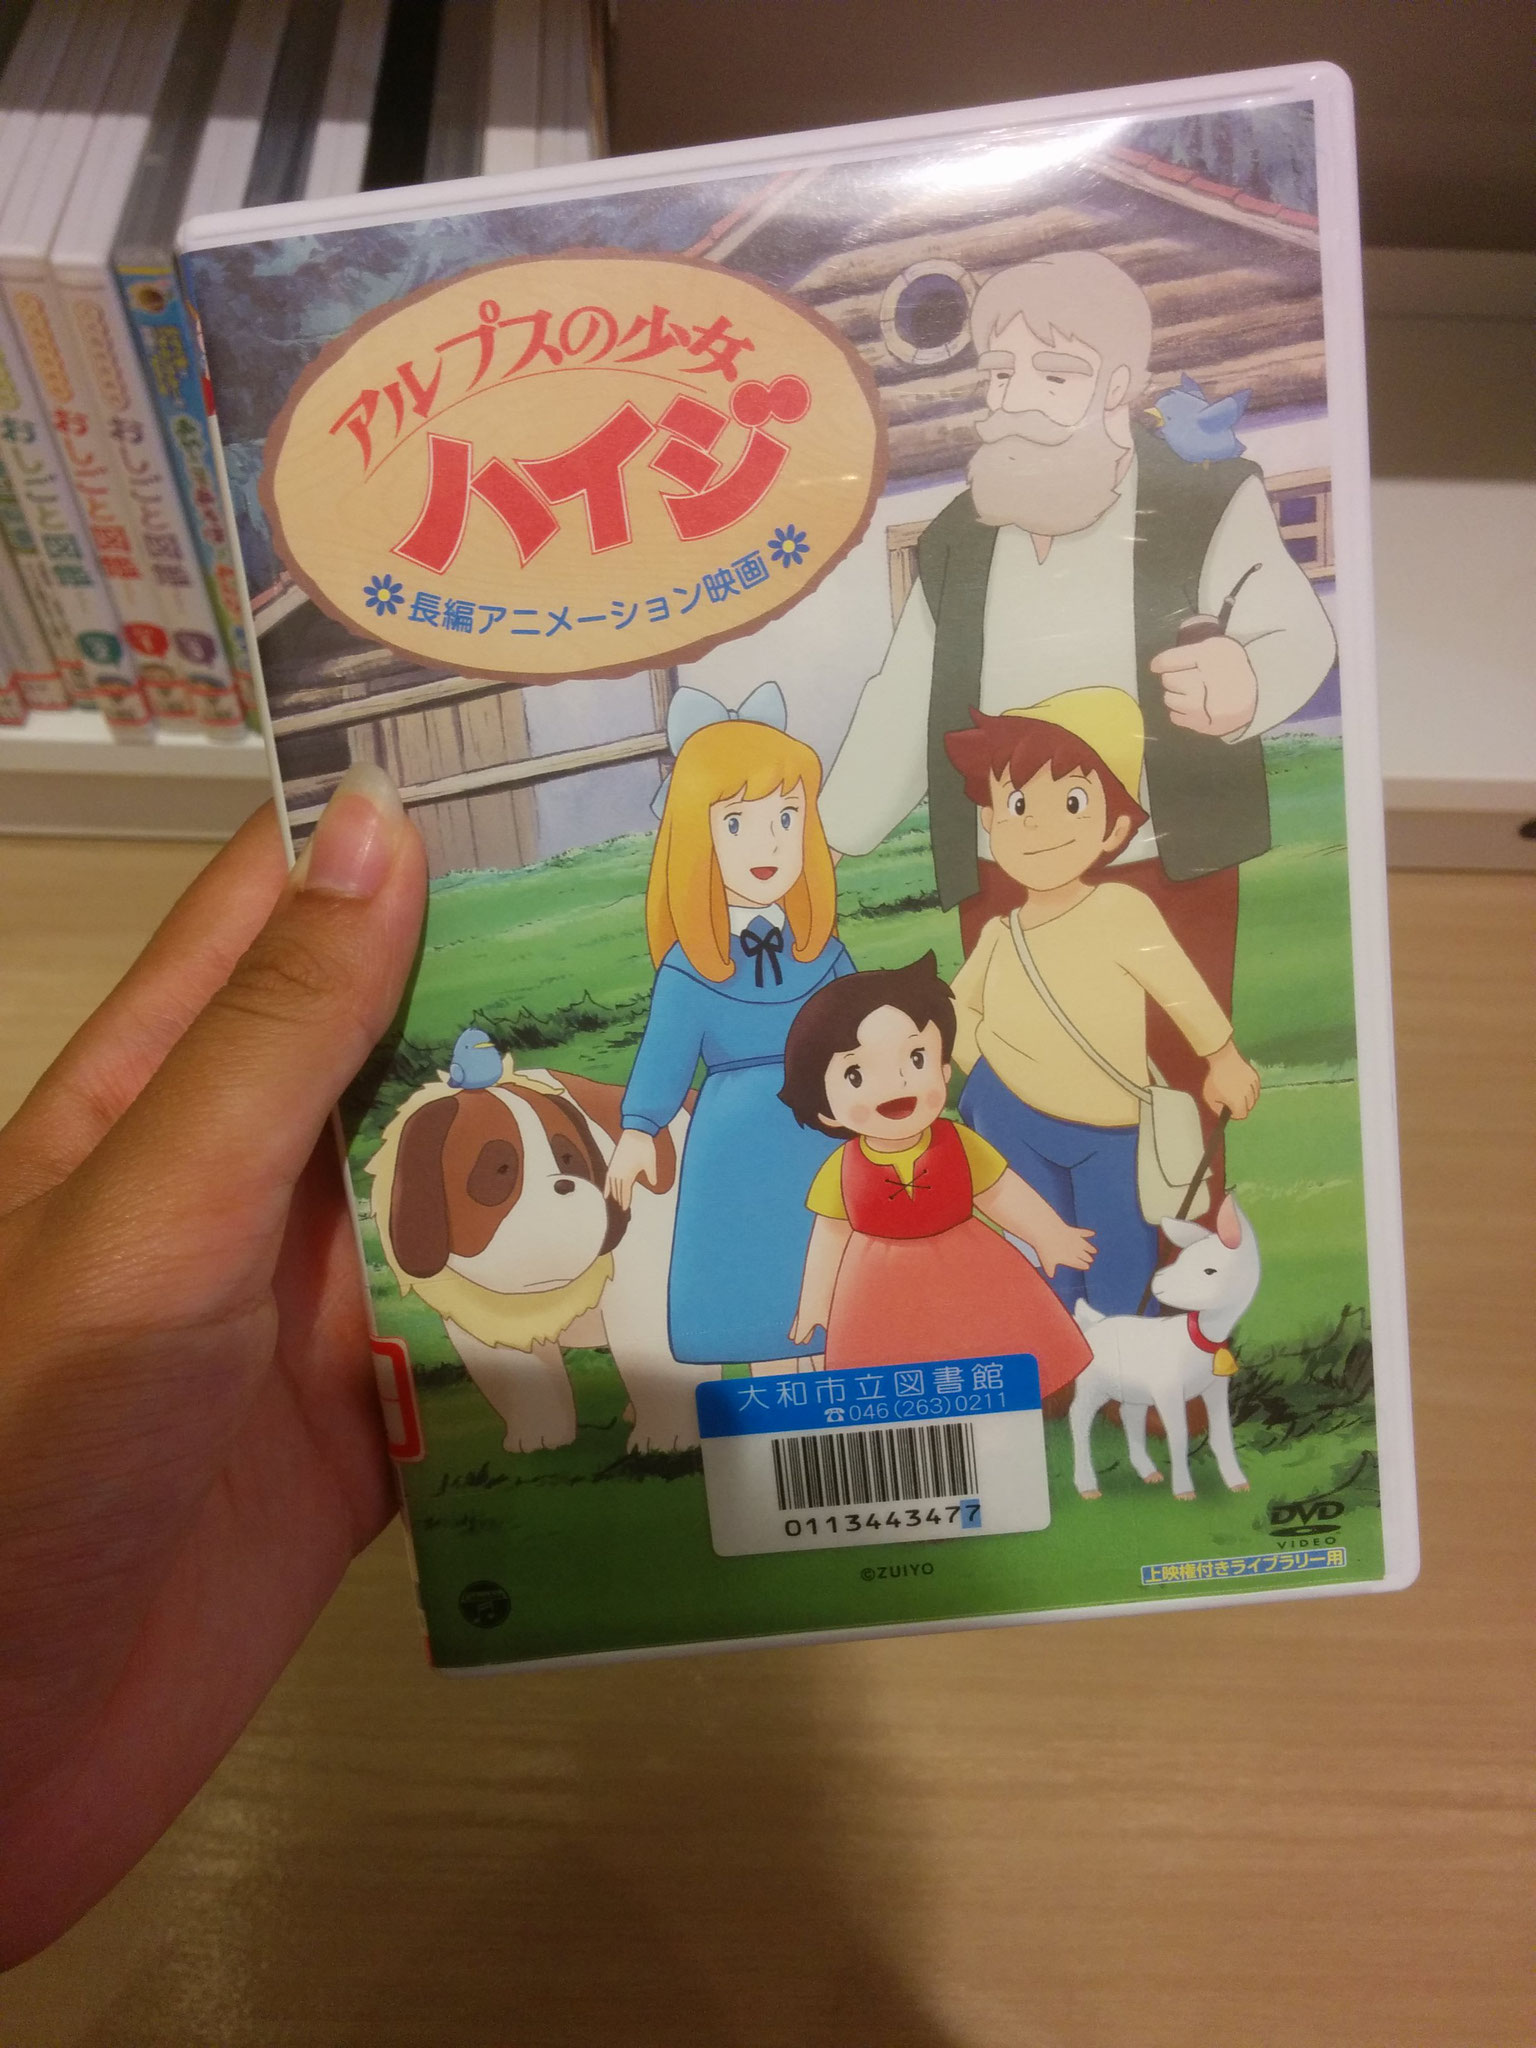 8 Yamato Library - Look what I've found ;P